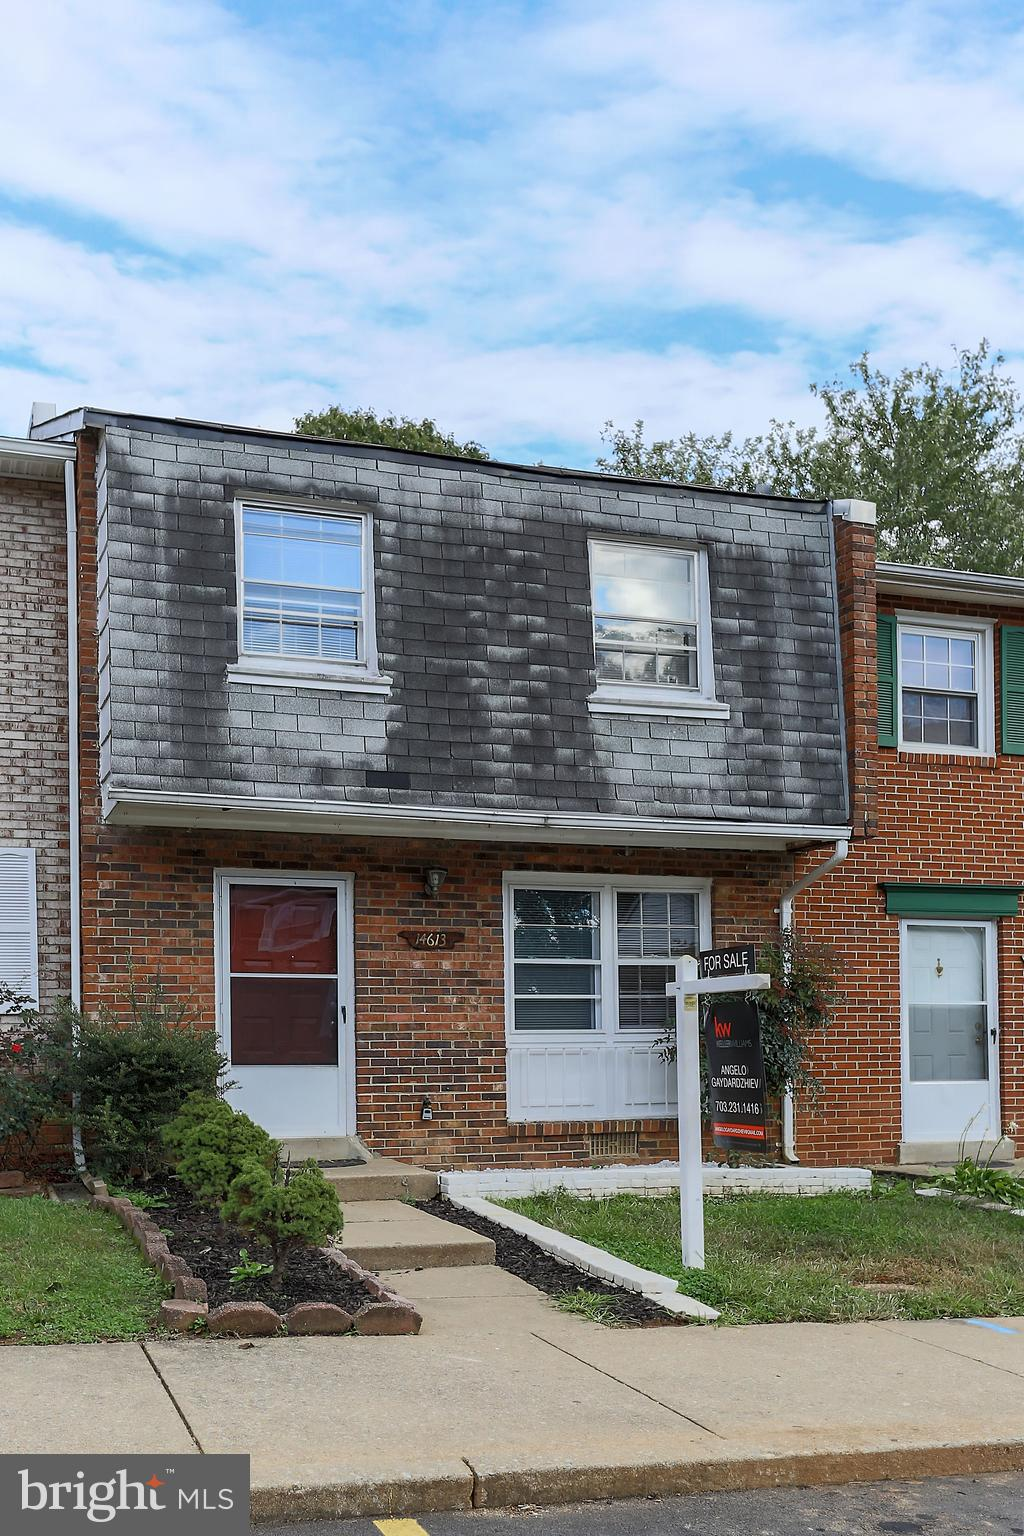 Great brick townhome. 3 bedrooms, 1.5 bathrooms. New HVAC, new water heater, new windows and doors. Wooden floors, new carpet, quartz countertop, updated bathrooms and many more updates. 5 min to Rt 95.